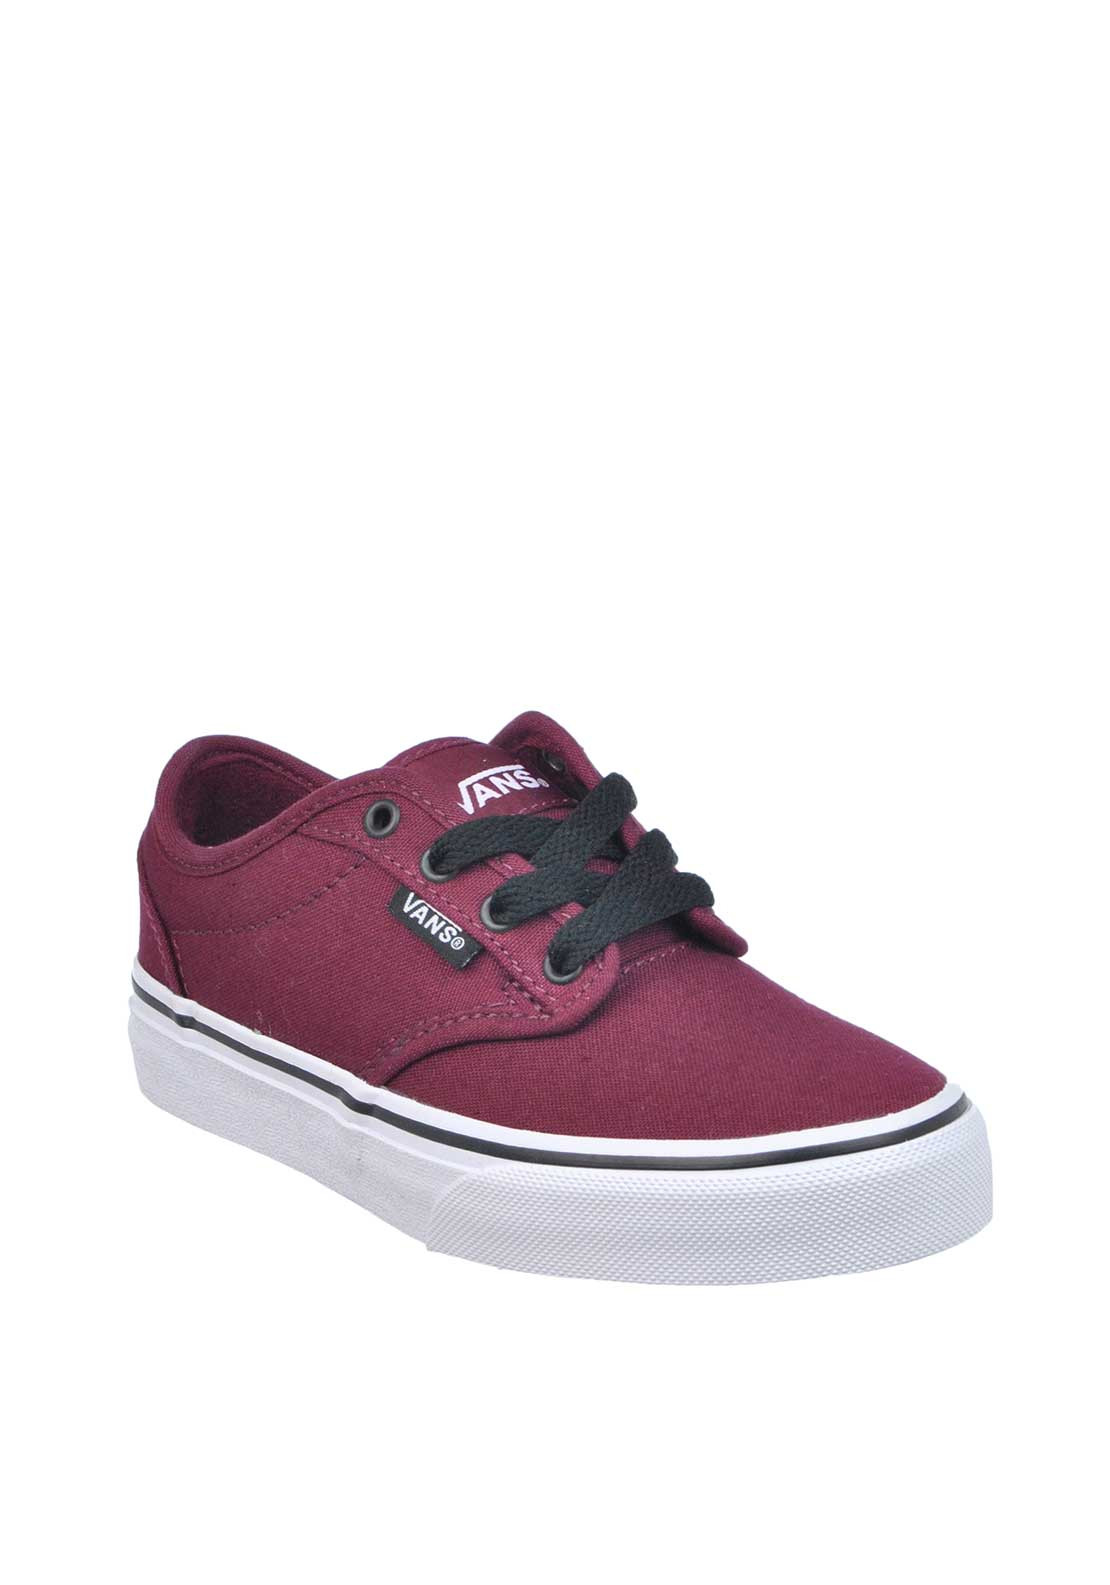 Vans Kid Atwood Trainers, Burgundy